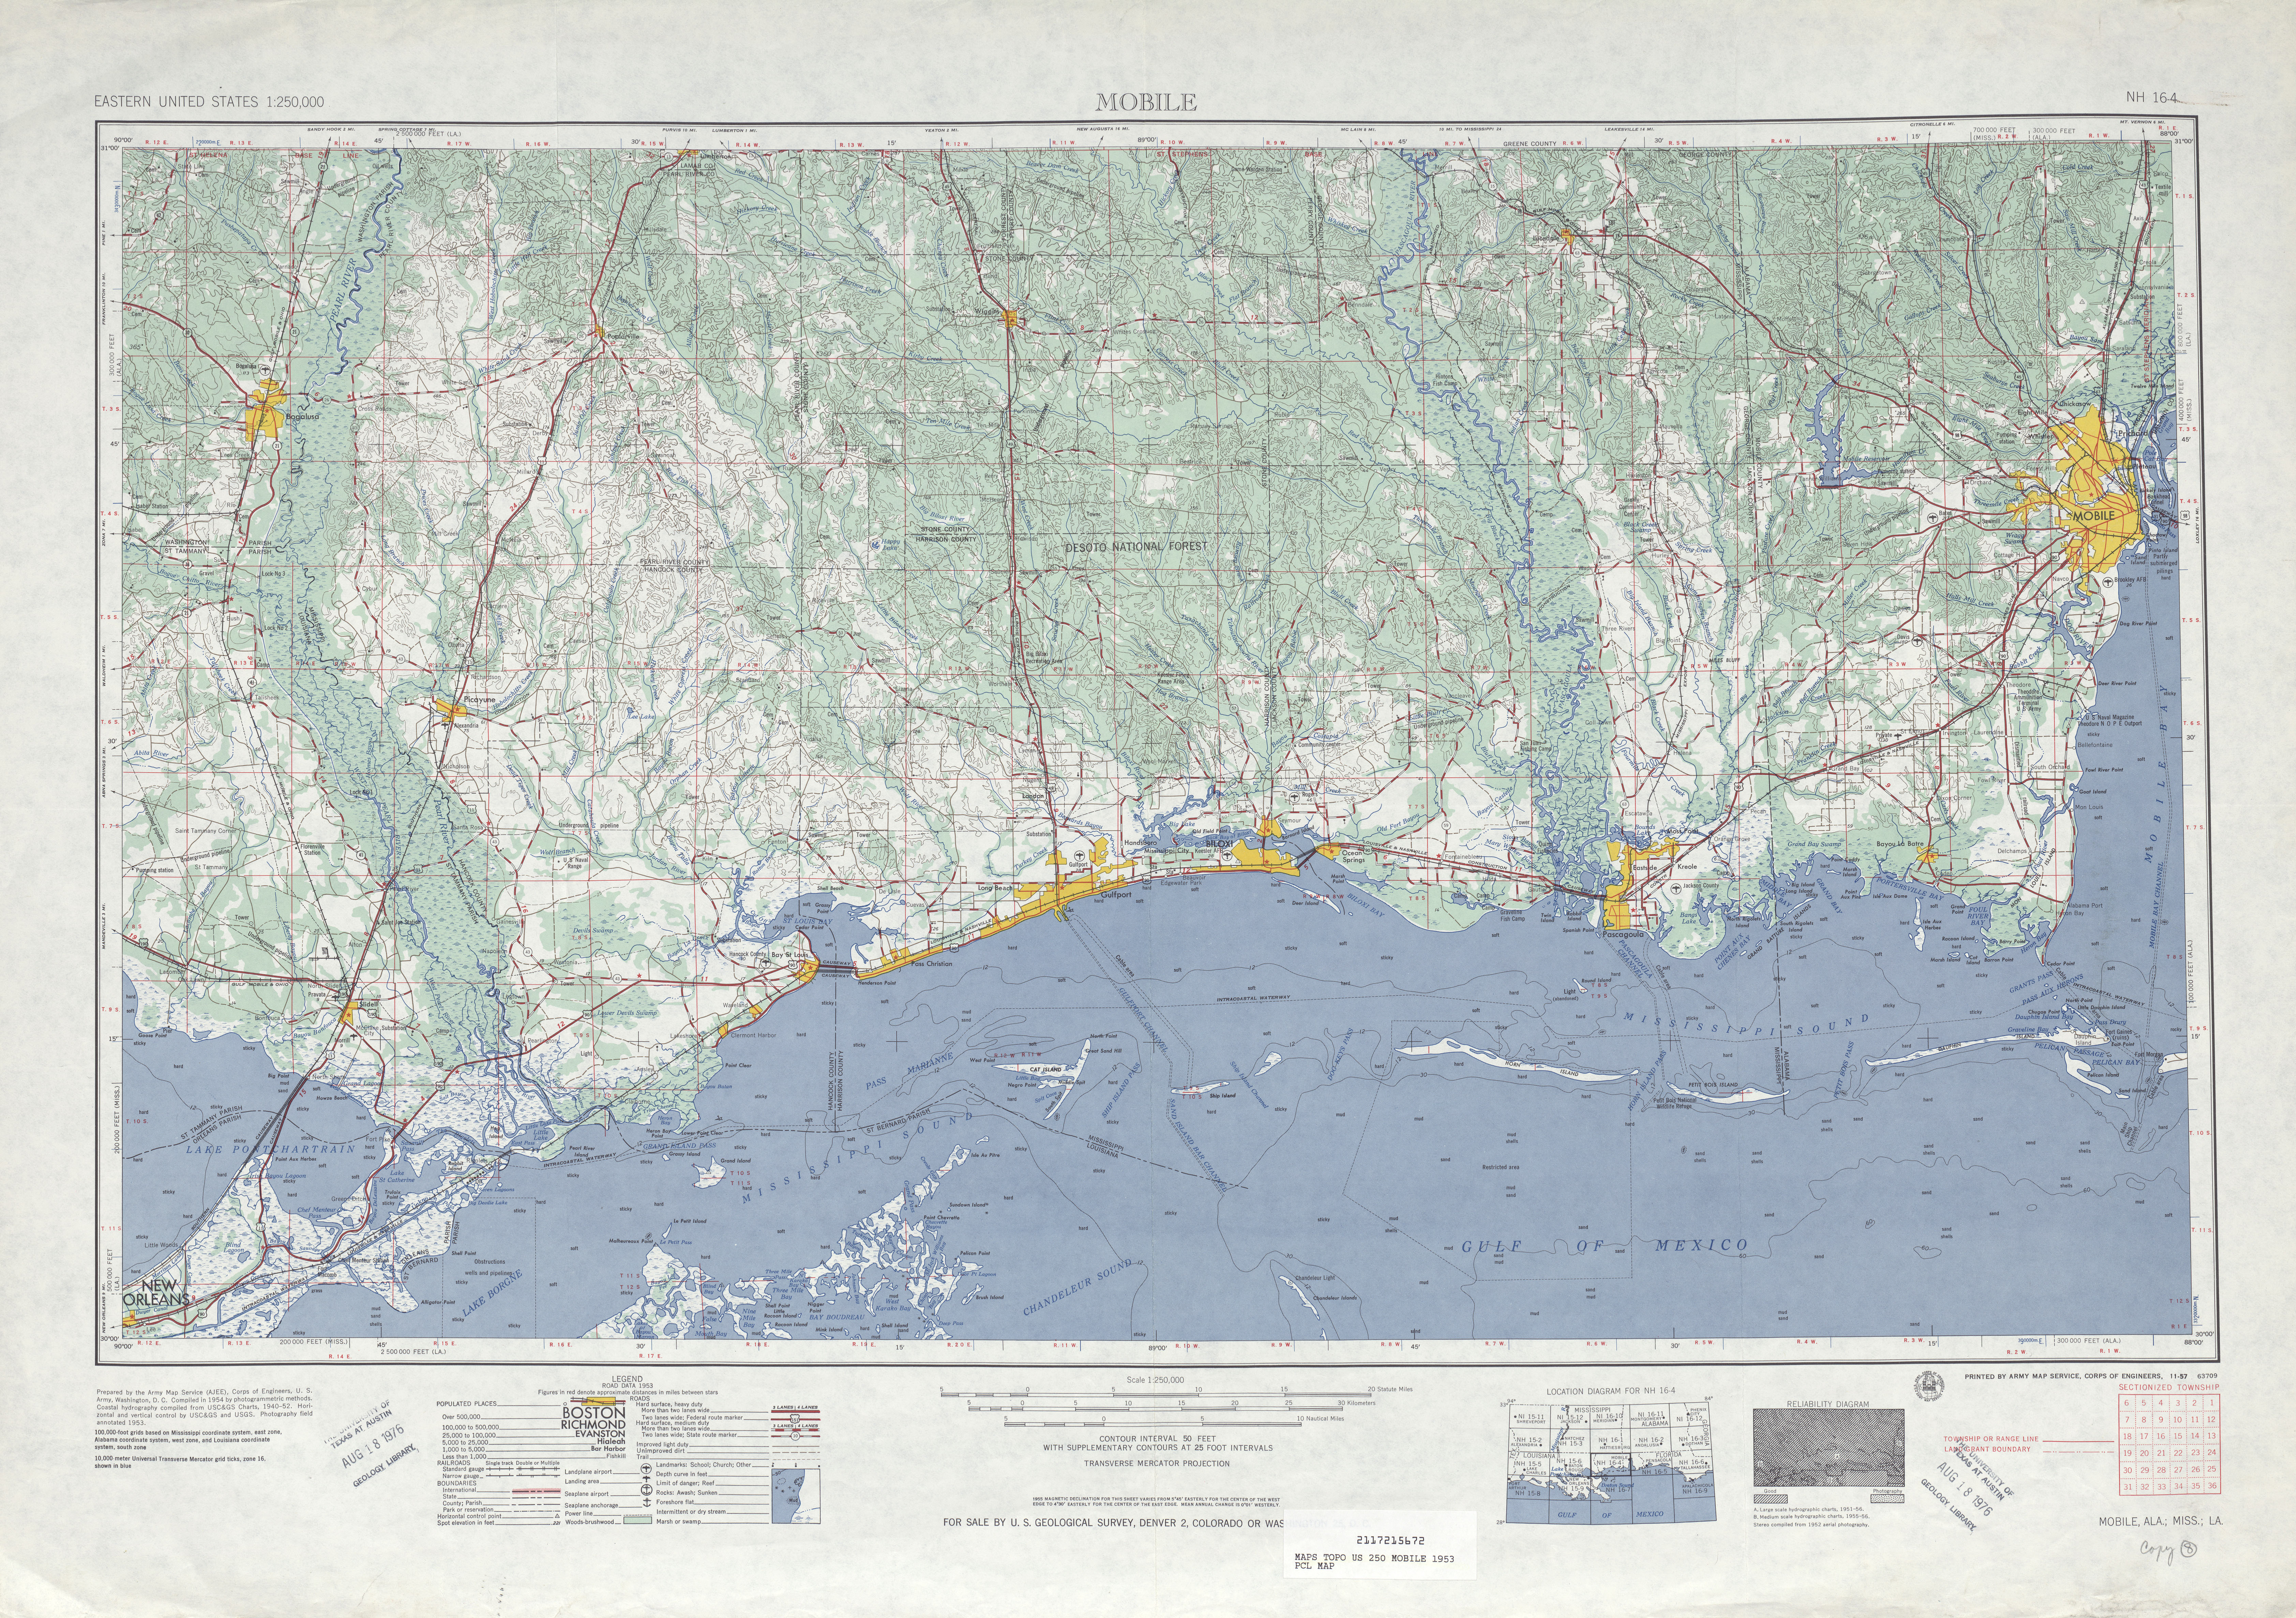 Alabama Topographic Maps - Perry-Castañeda Map Collection ... on map of white, map of staten, map of johnson, map of tucker, map of locust point, map of east bronx, map of polo grounds, map of tryon, map of sylvester, map of weeks bay, map of hephzibah, map of olde town arvada, map of north boulder, map of culbertson, map of parkchester, map of tekamah, map of northern denver, map of thomas county, map of coleman, map of sloan's lake,